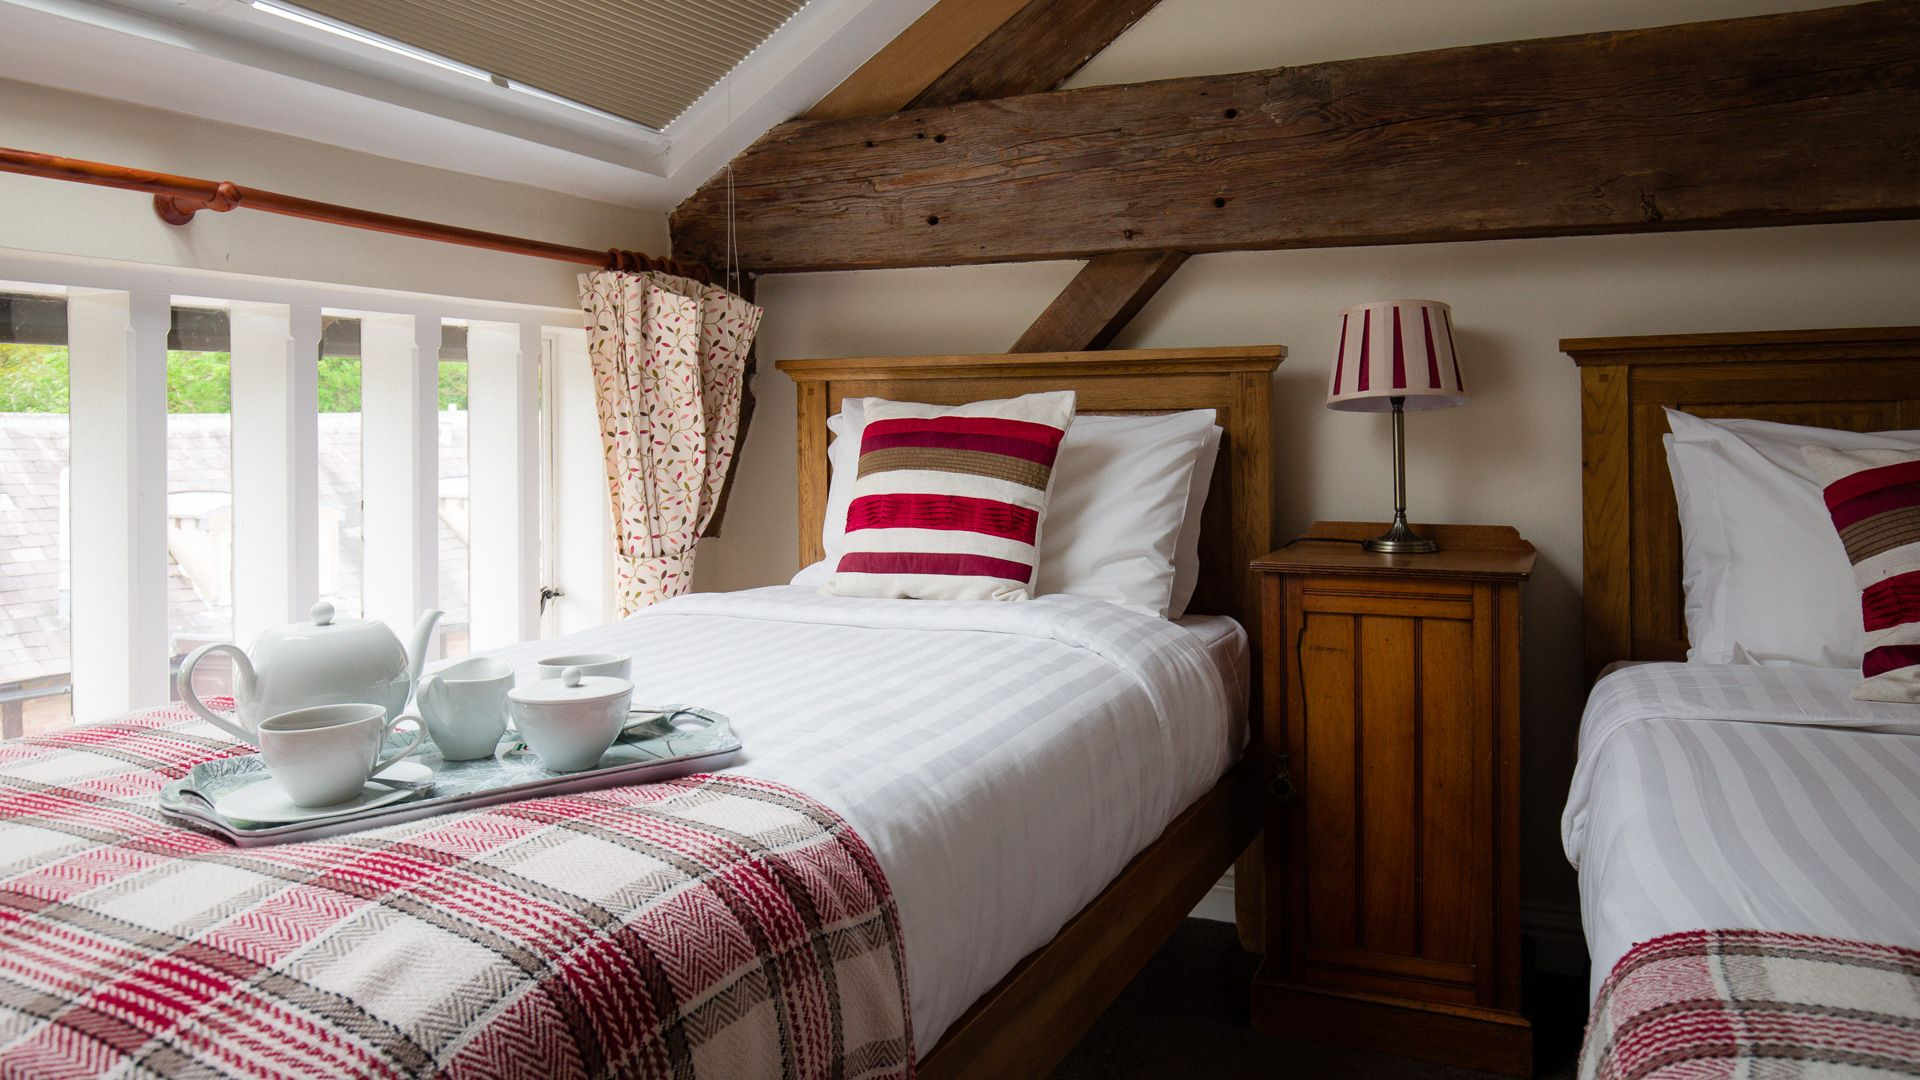 Bedroom Two, Oliver Cromwell at Sudeley Castle, Bolthole Retreats